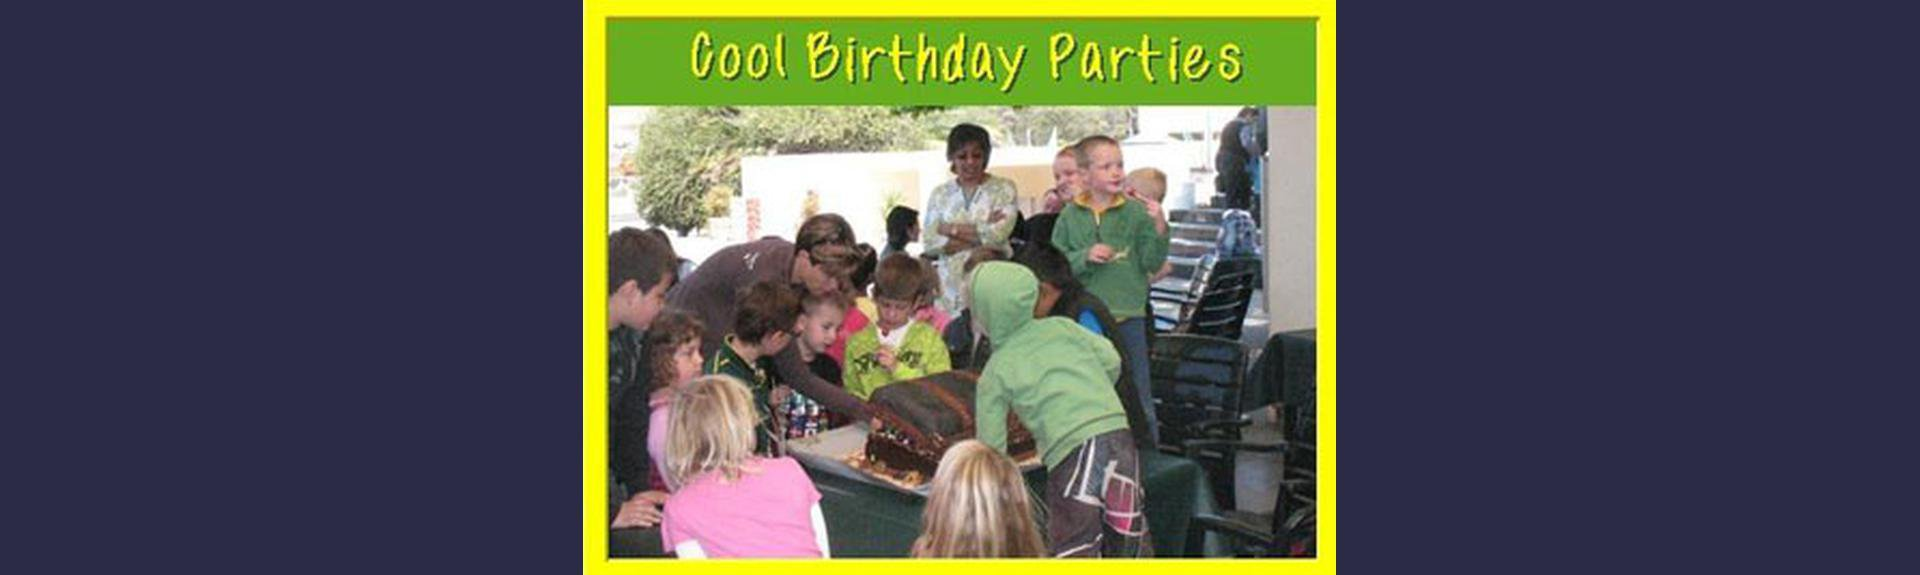 Kids party venues rental ideas Kyalami Johannesburg